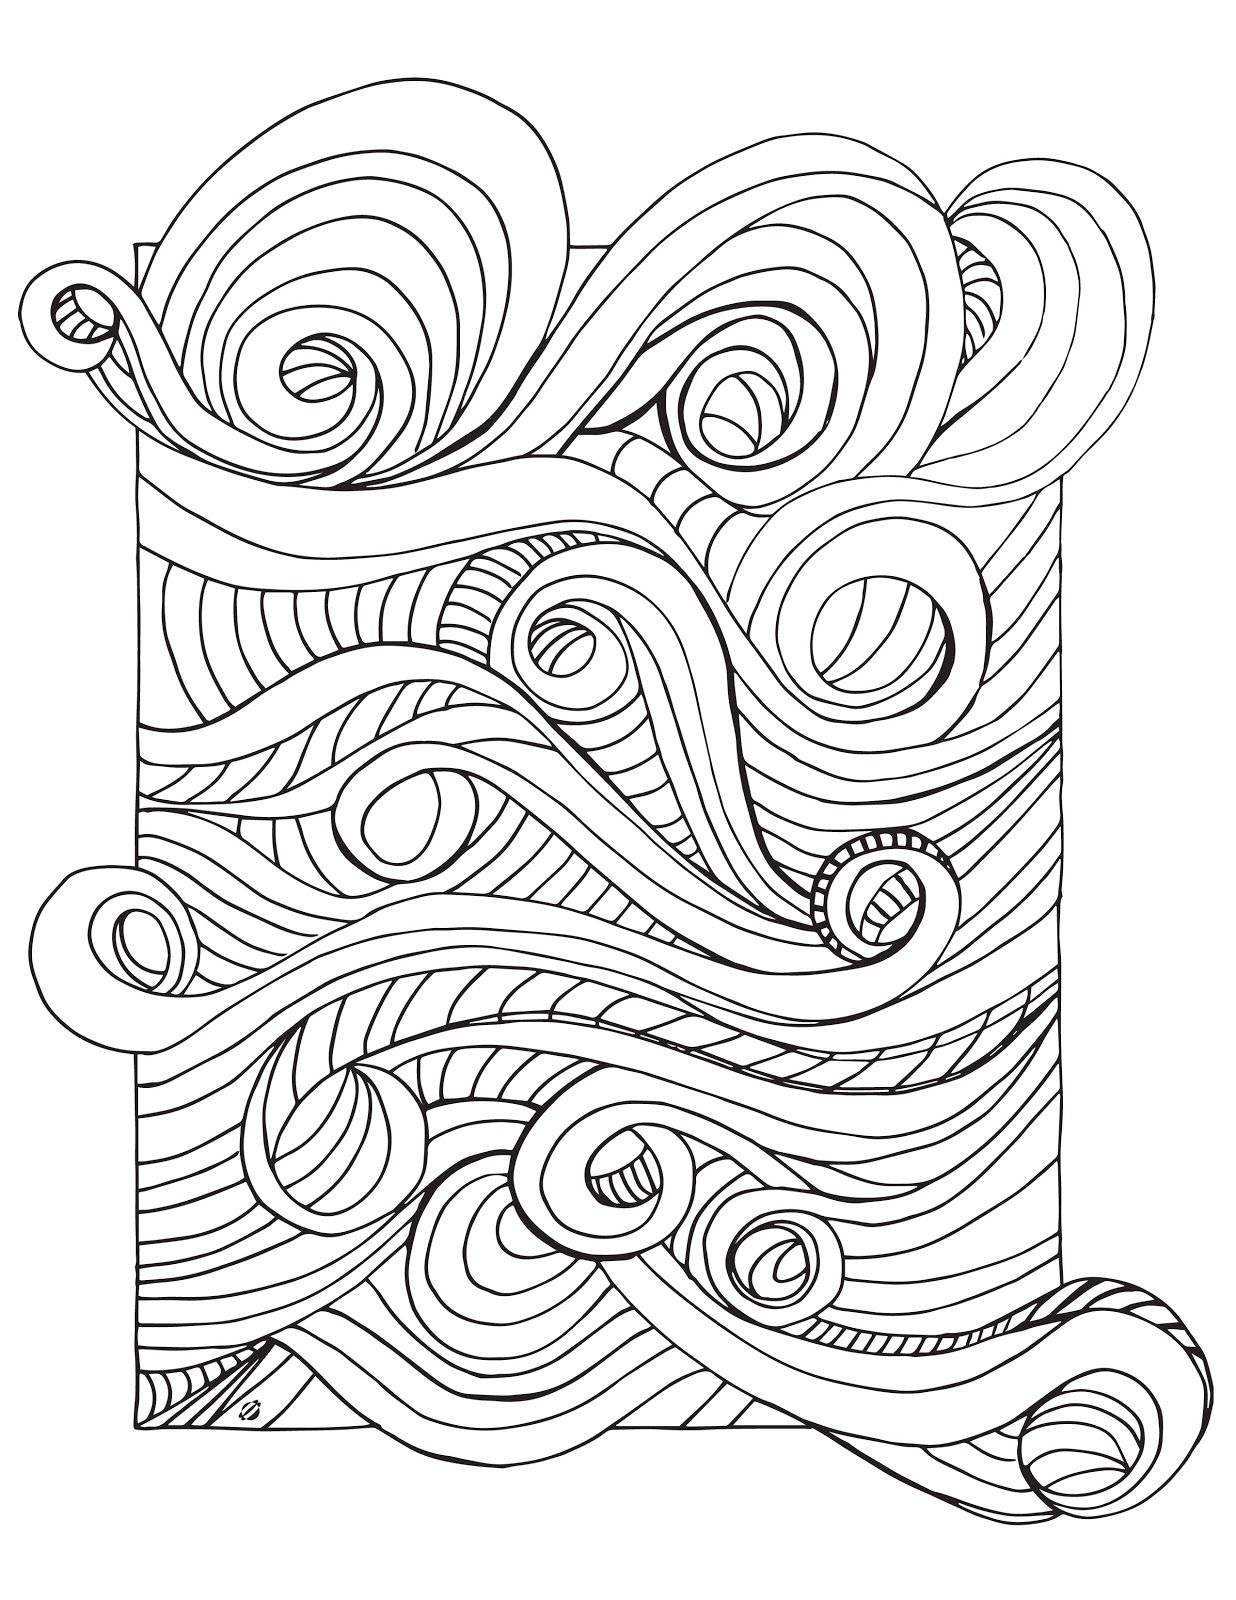 1236x1600 Ocean Waves Coloring Pages For Adults Barkandcall Me Mesmerizing